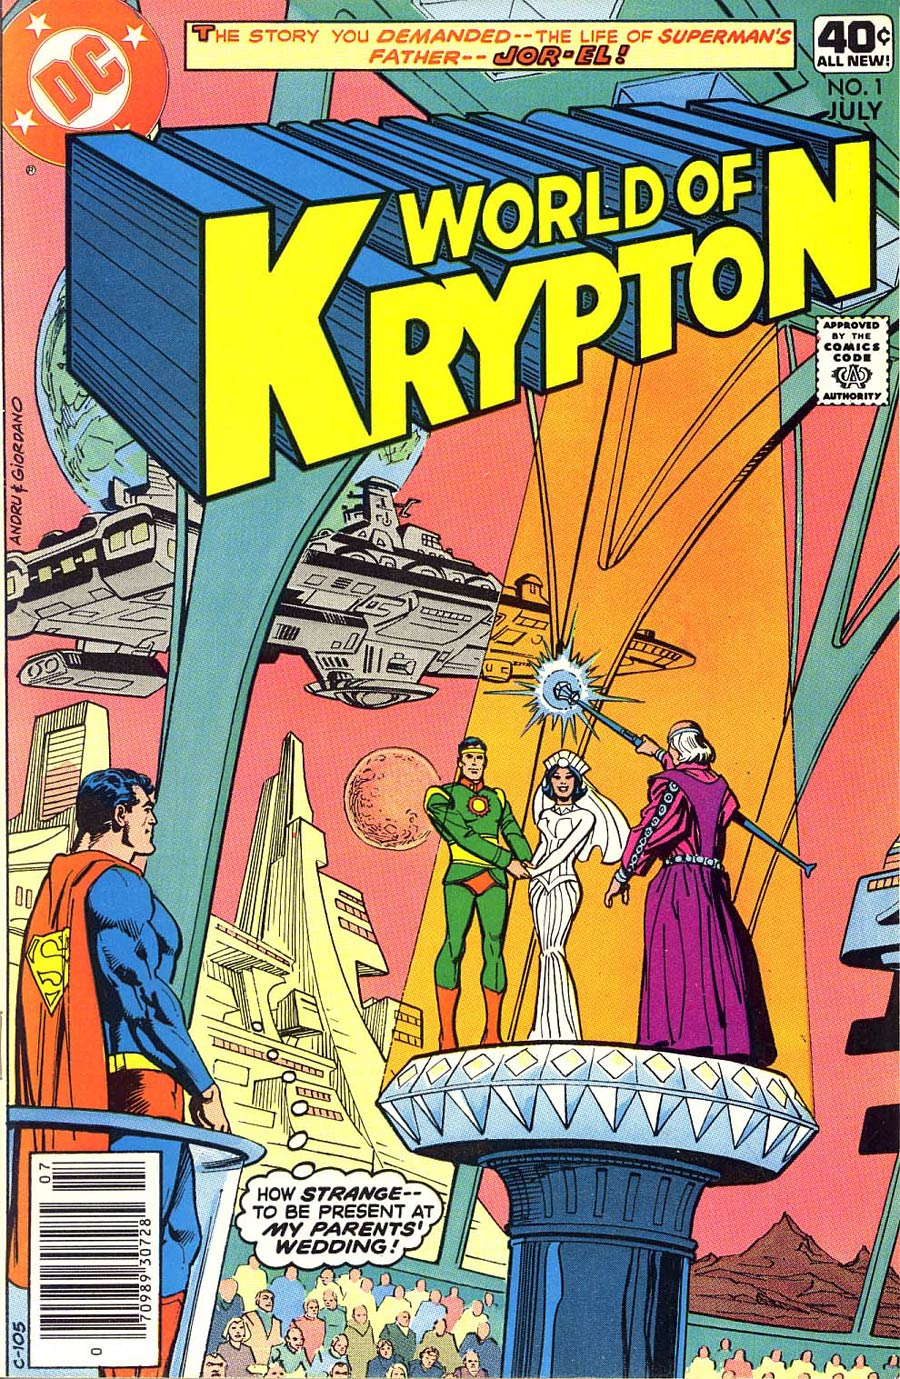 World Of Krypton Vol 1 #1